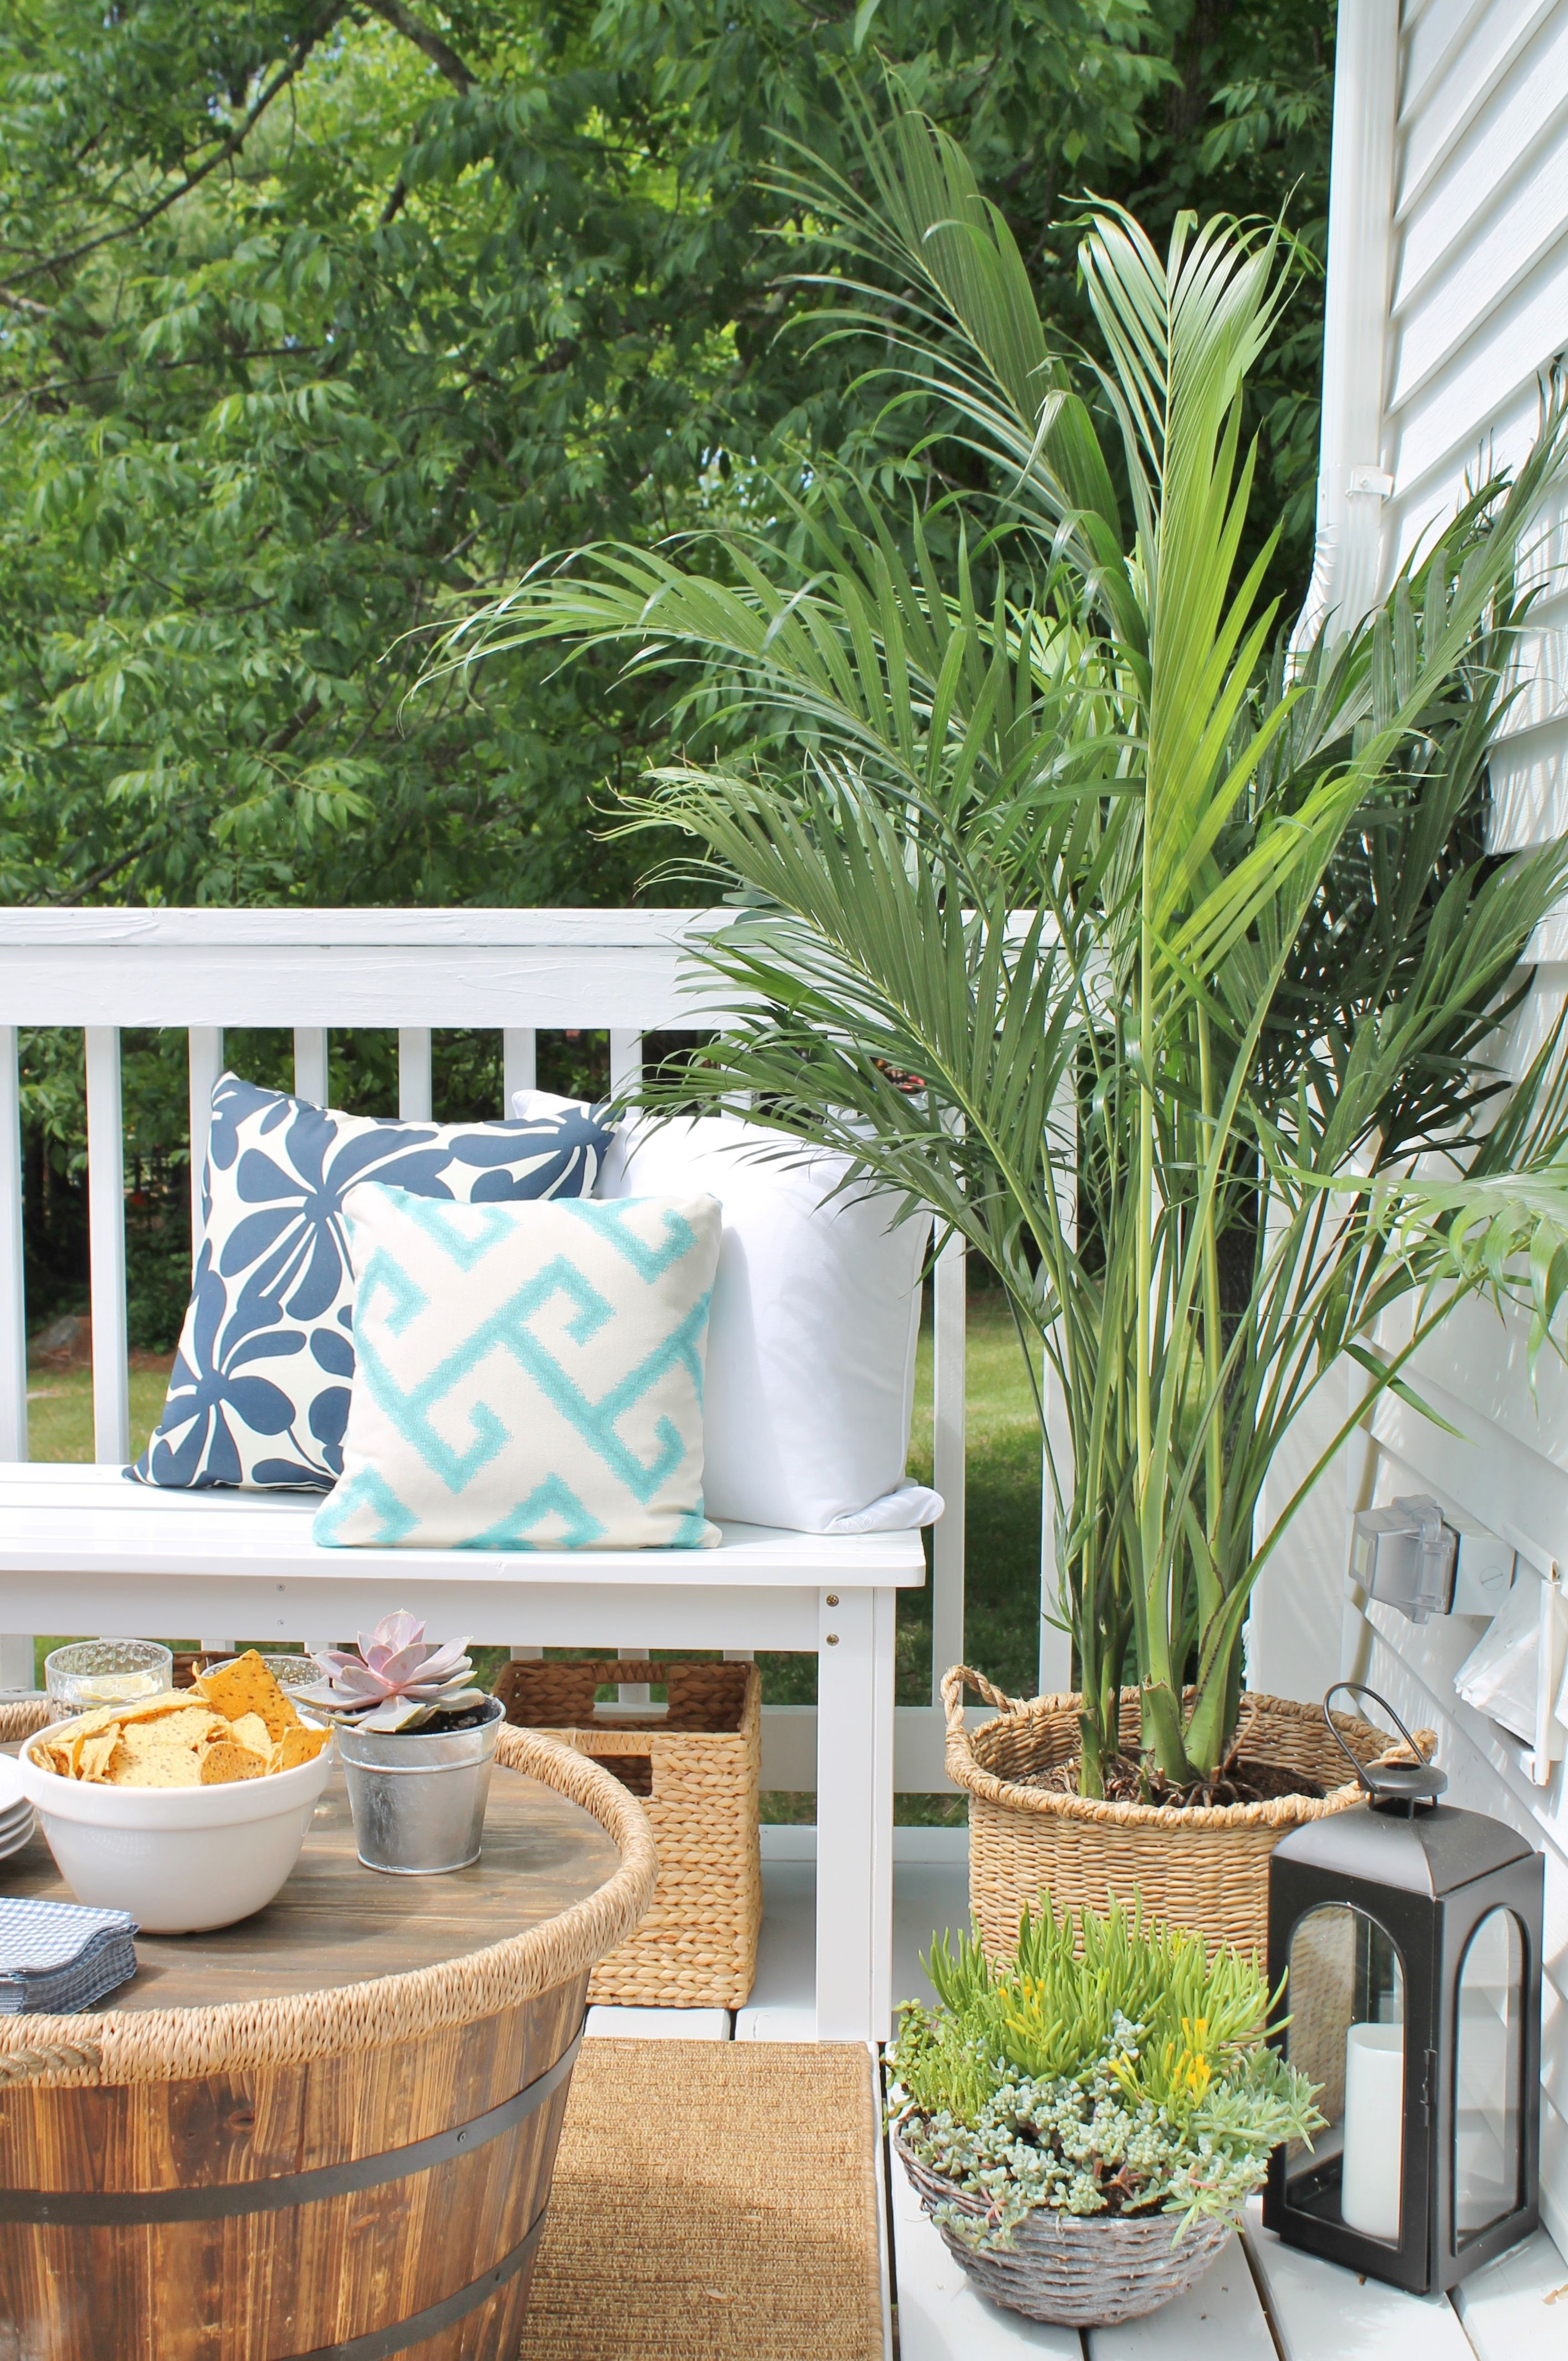 Lowes spring makeoveroutdoor oasis city farmhouse